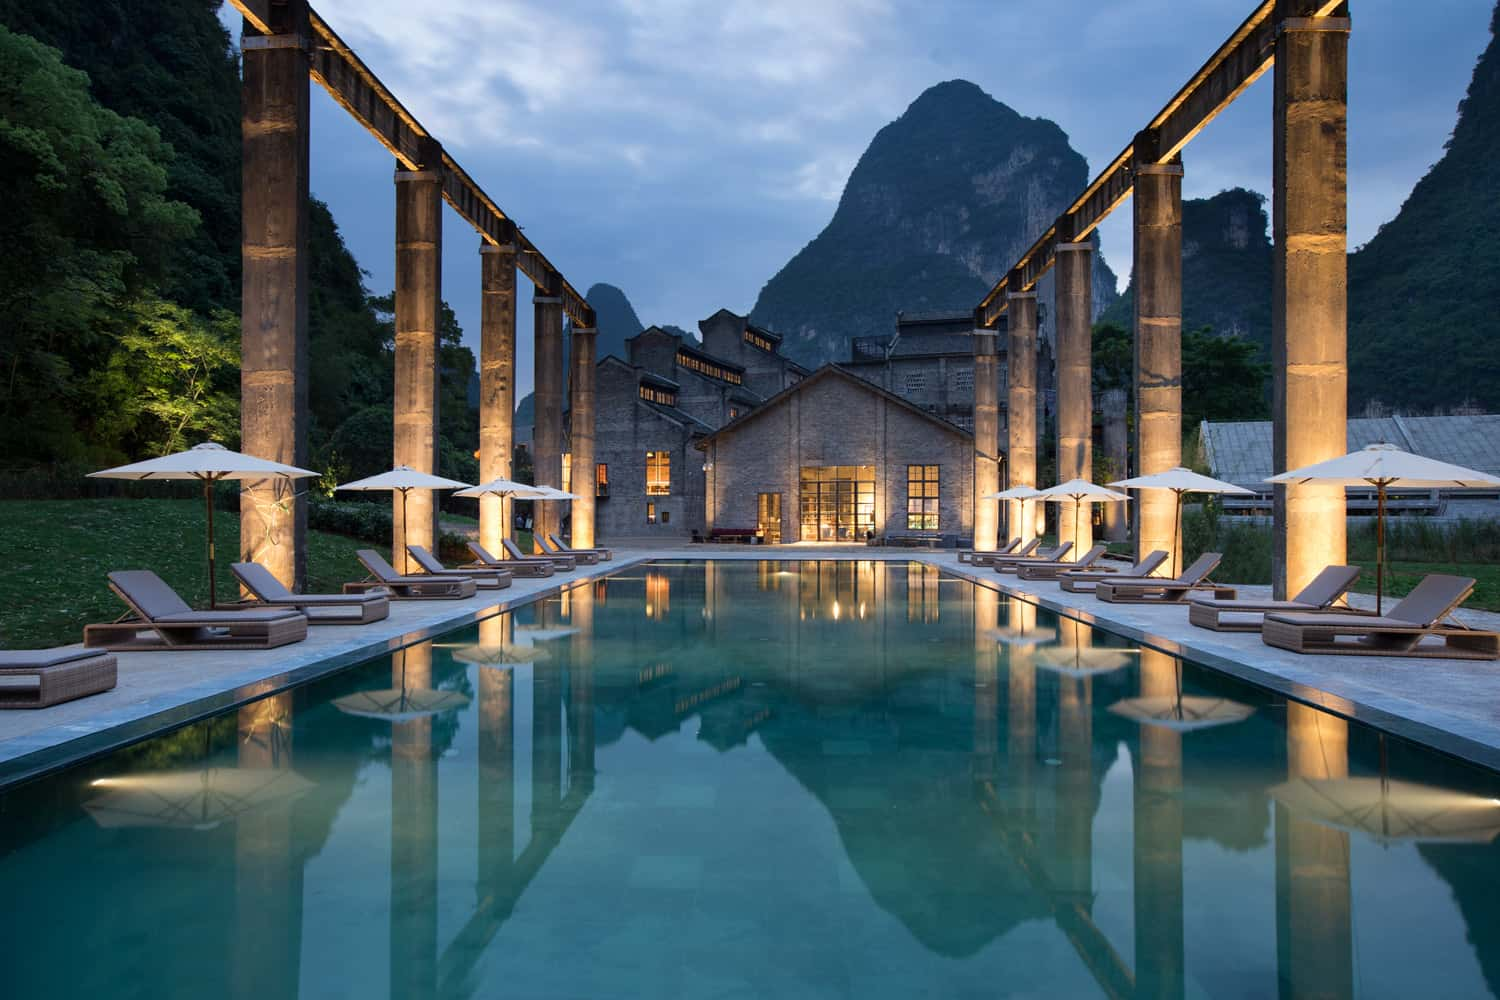 The Pool At Alila Yangshuo Hotel In Guilin China Was Transformed From A Sugarcane